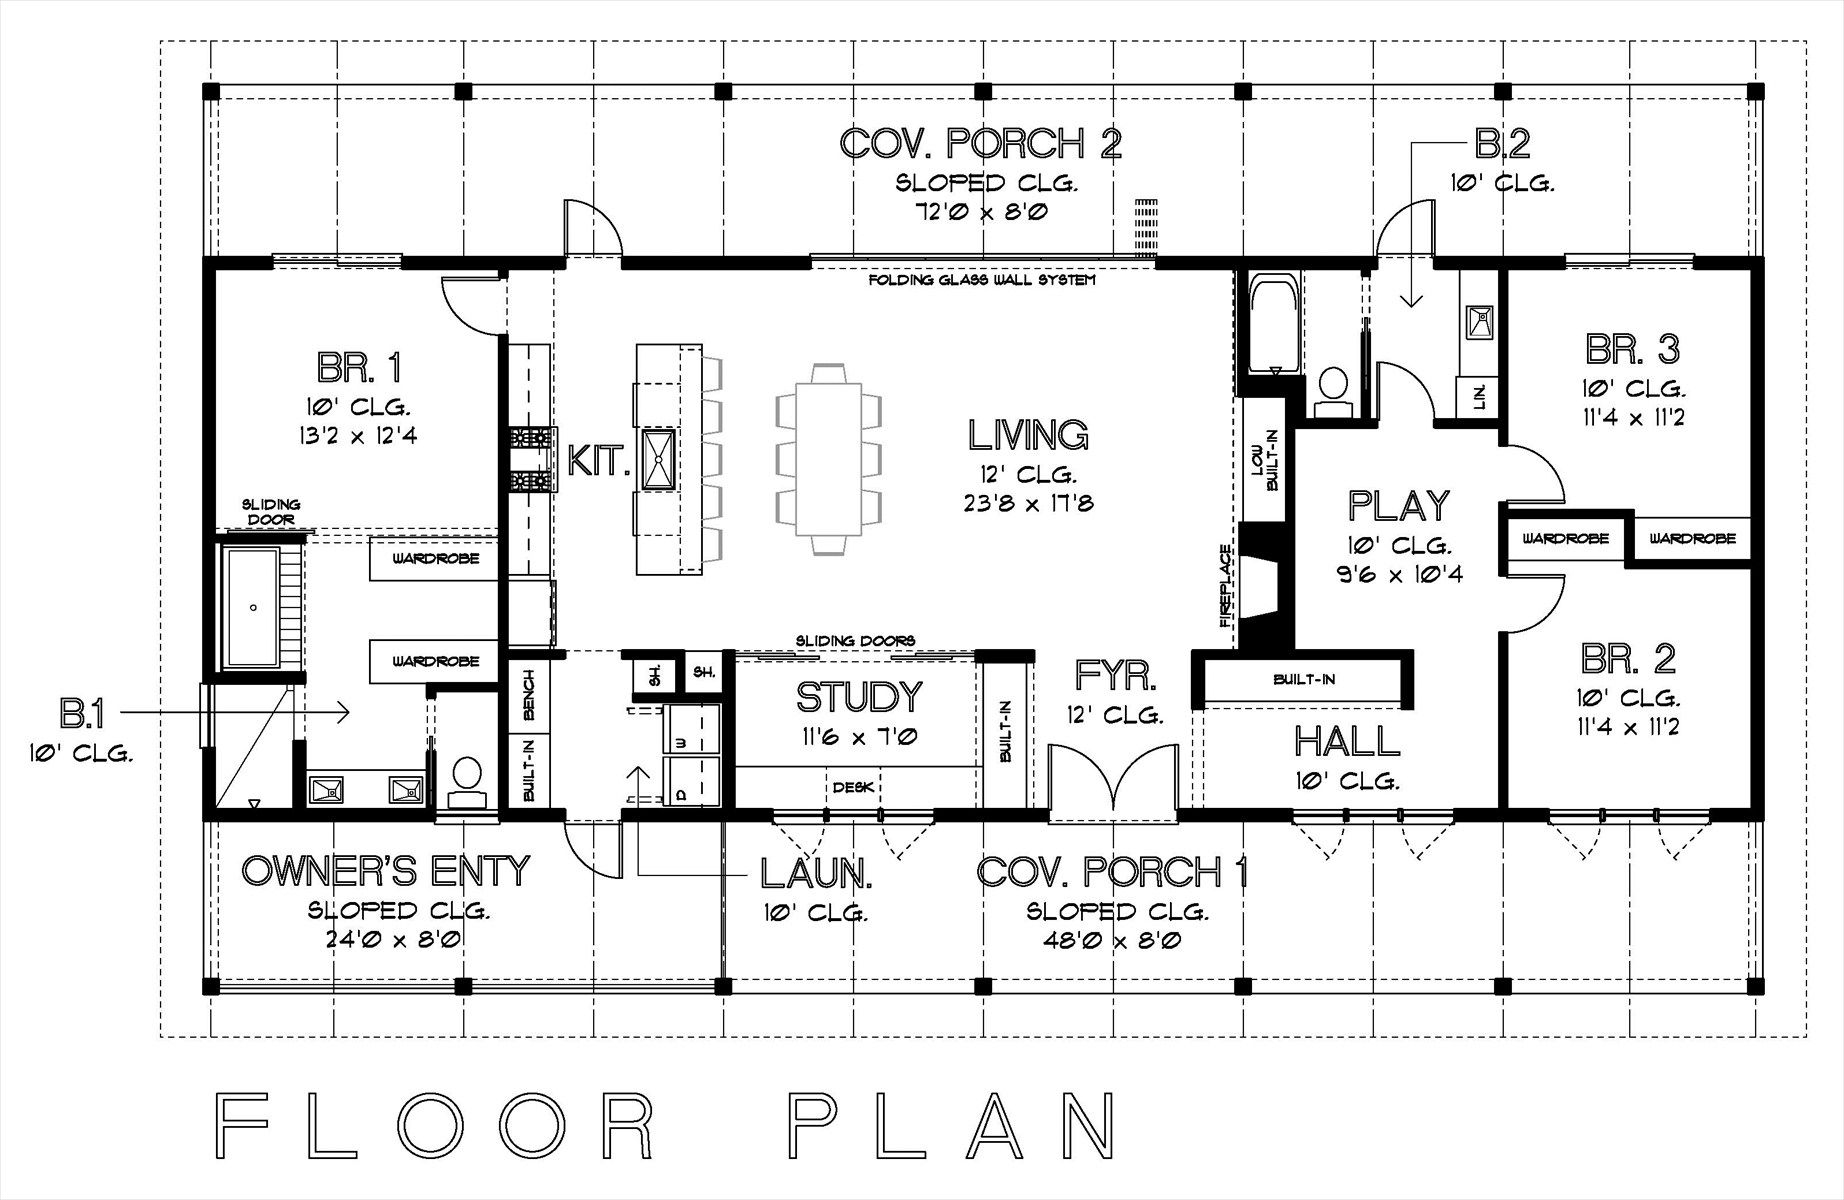 images about Home  Floorplans on Pinterest   Floor plans       images about Home  Floorplans on Pinterest   Floor plans  House plans and Small house plans